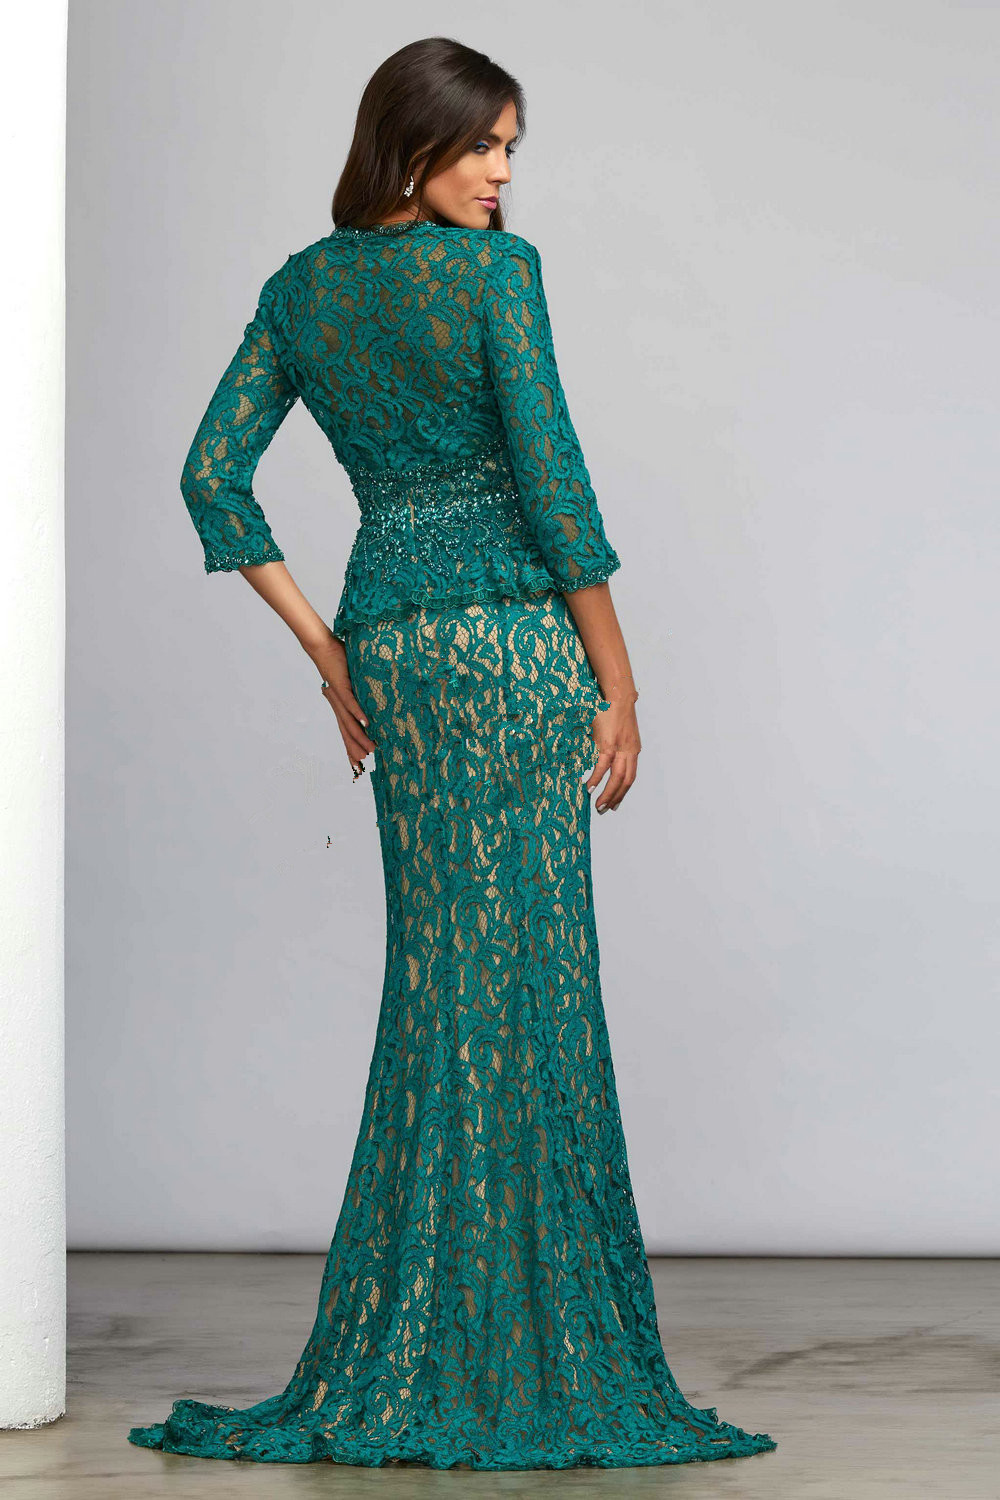 Outstanding Evening Dresses For Mother Of The Groom Gift - All ...